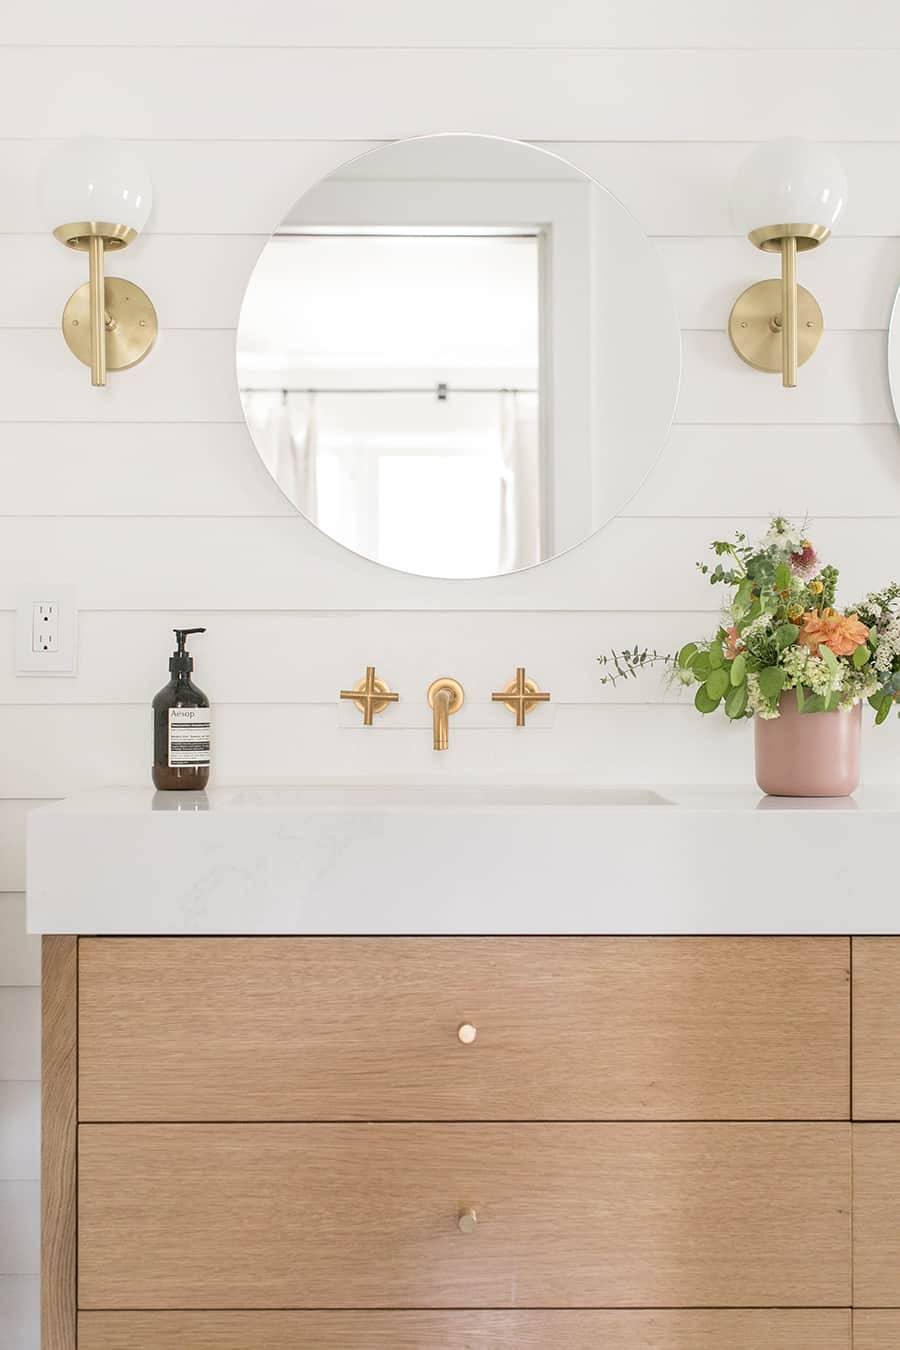 Charming bathroom vanity with thick counter top and three drawers, round mirror and flowers.